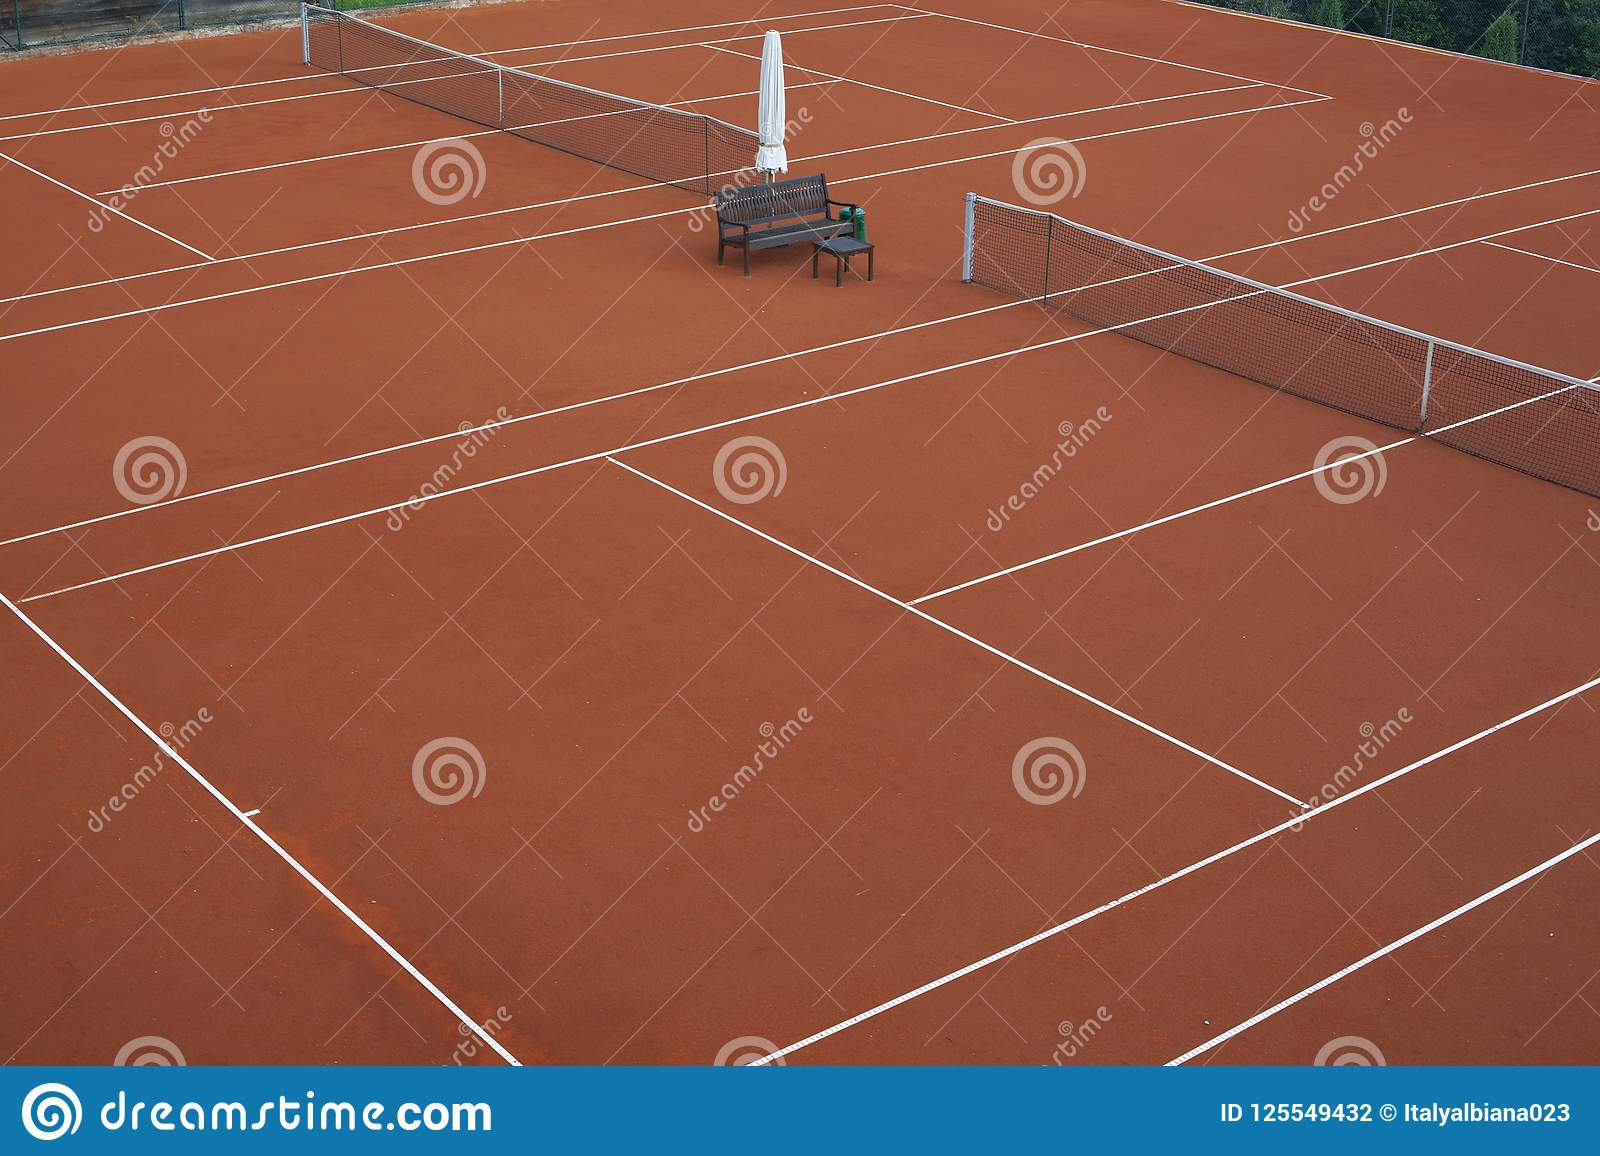 Tennis court for the preparation of athletes